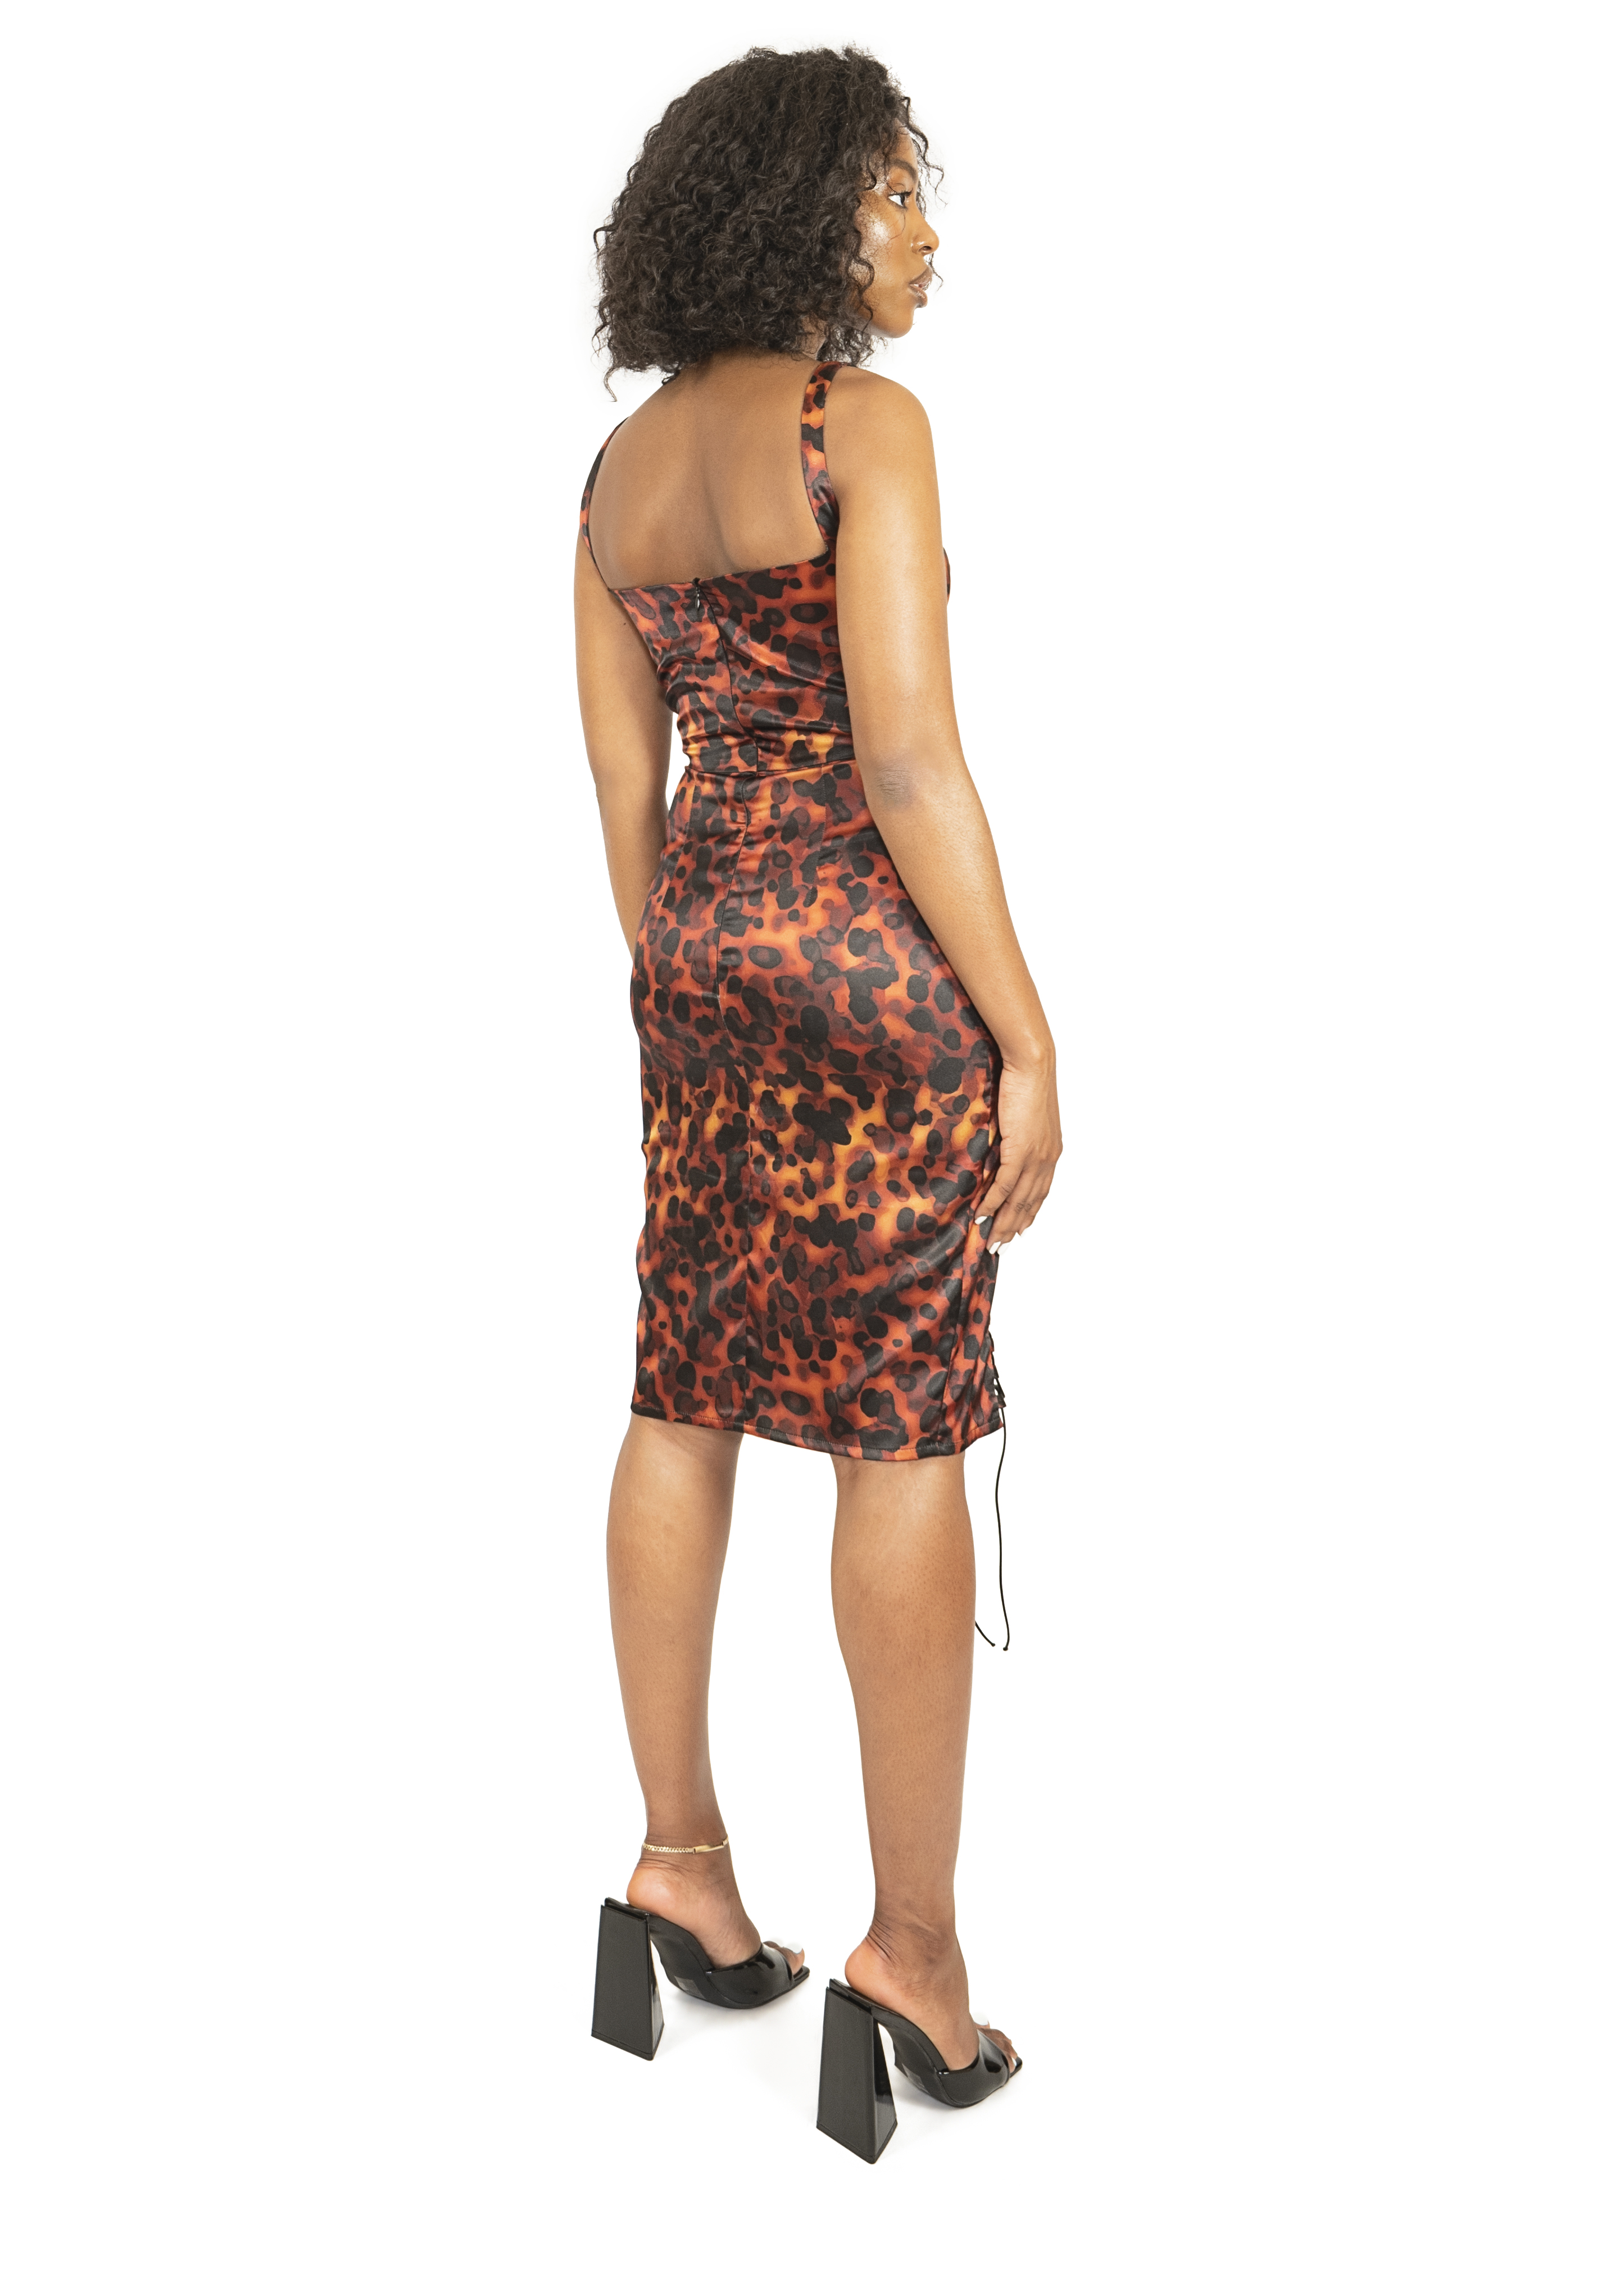 Dress_cloths_garments_product_photos_with_model_06